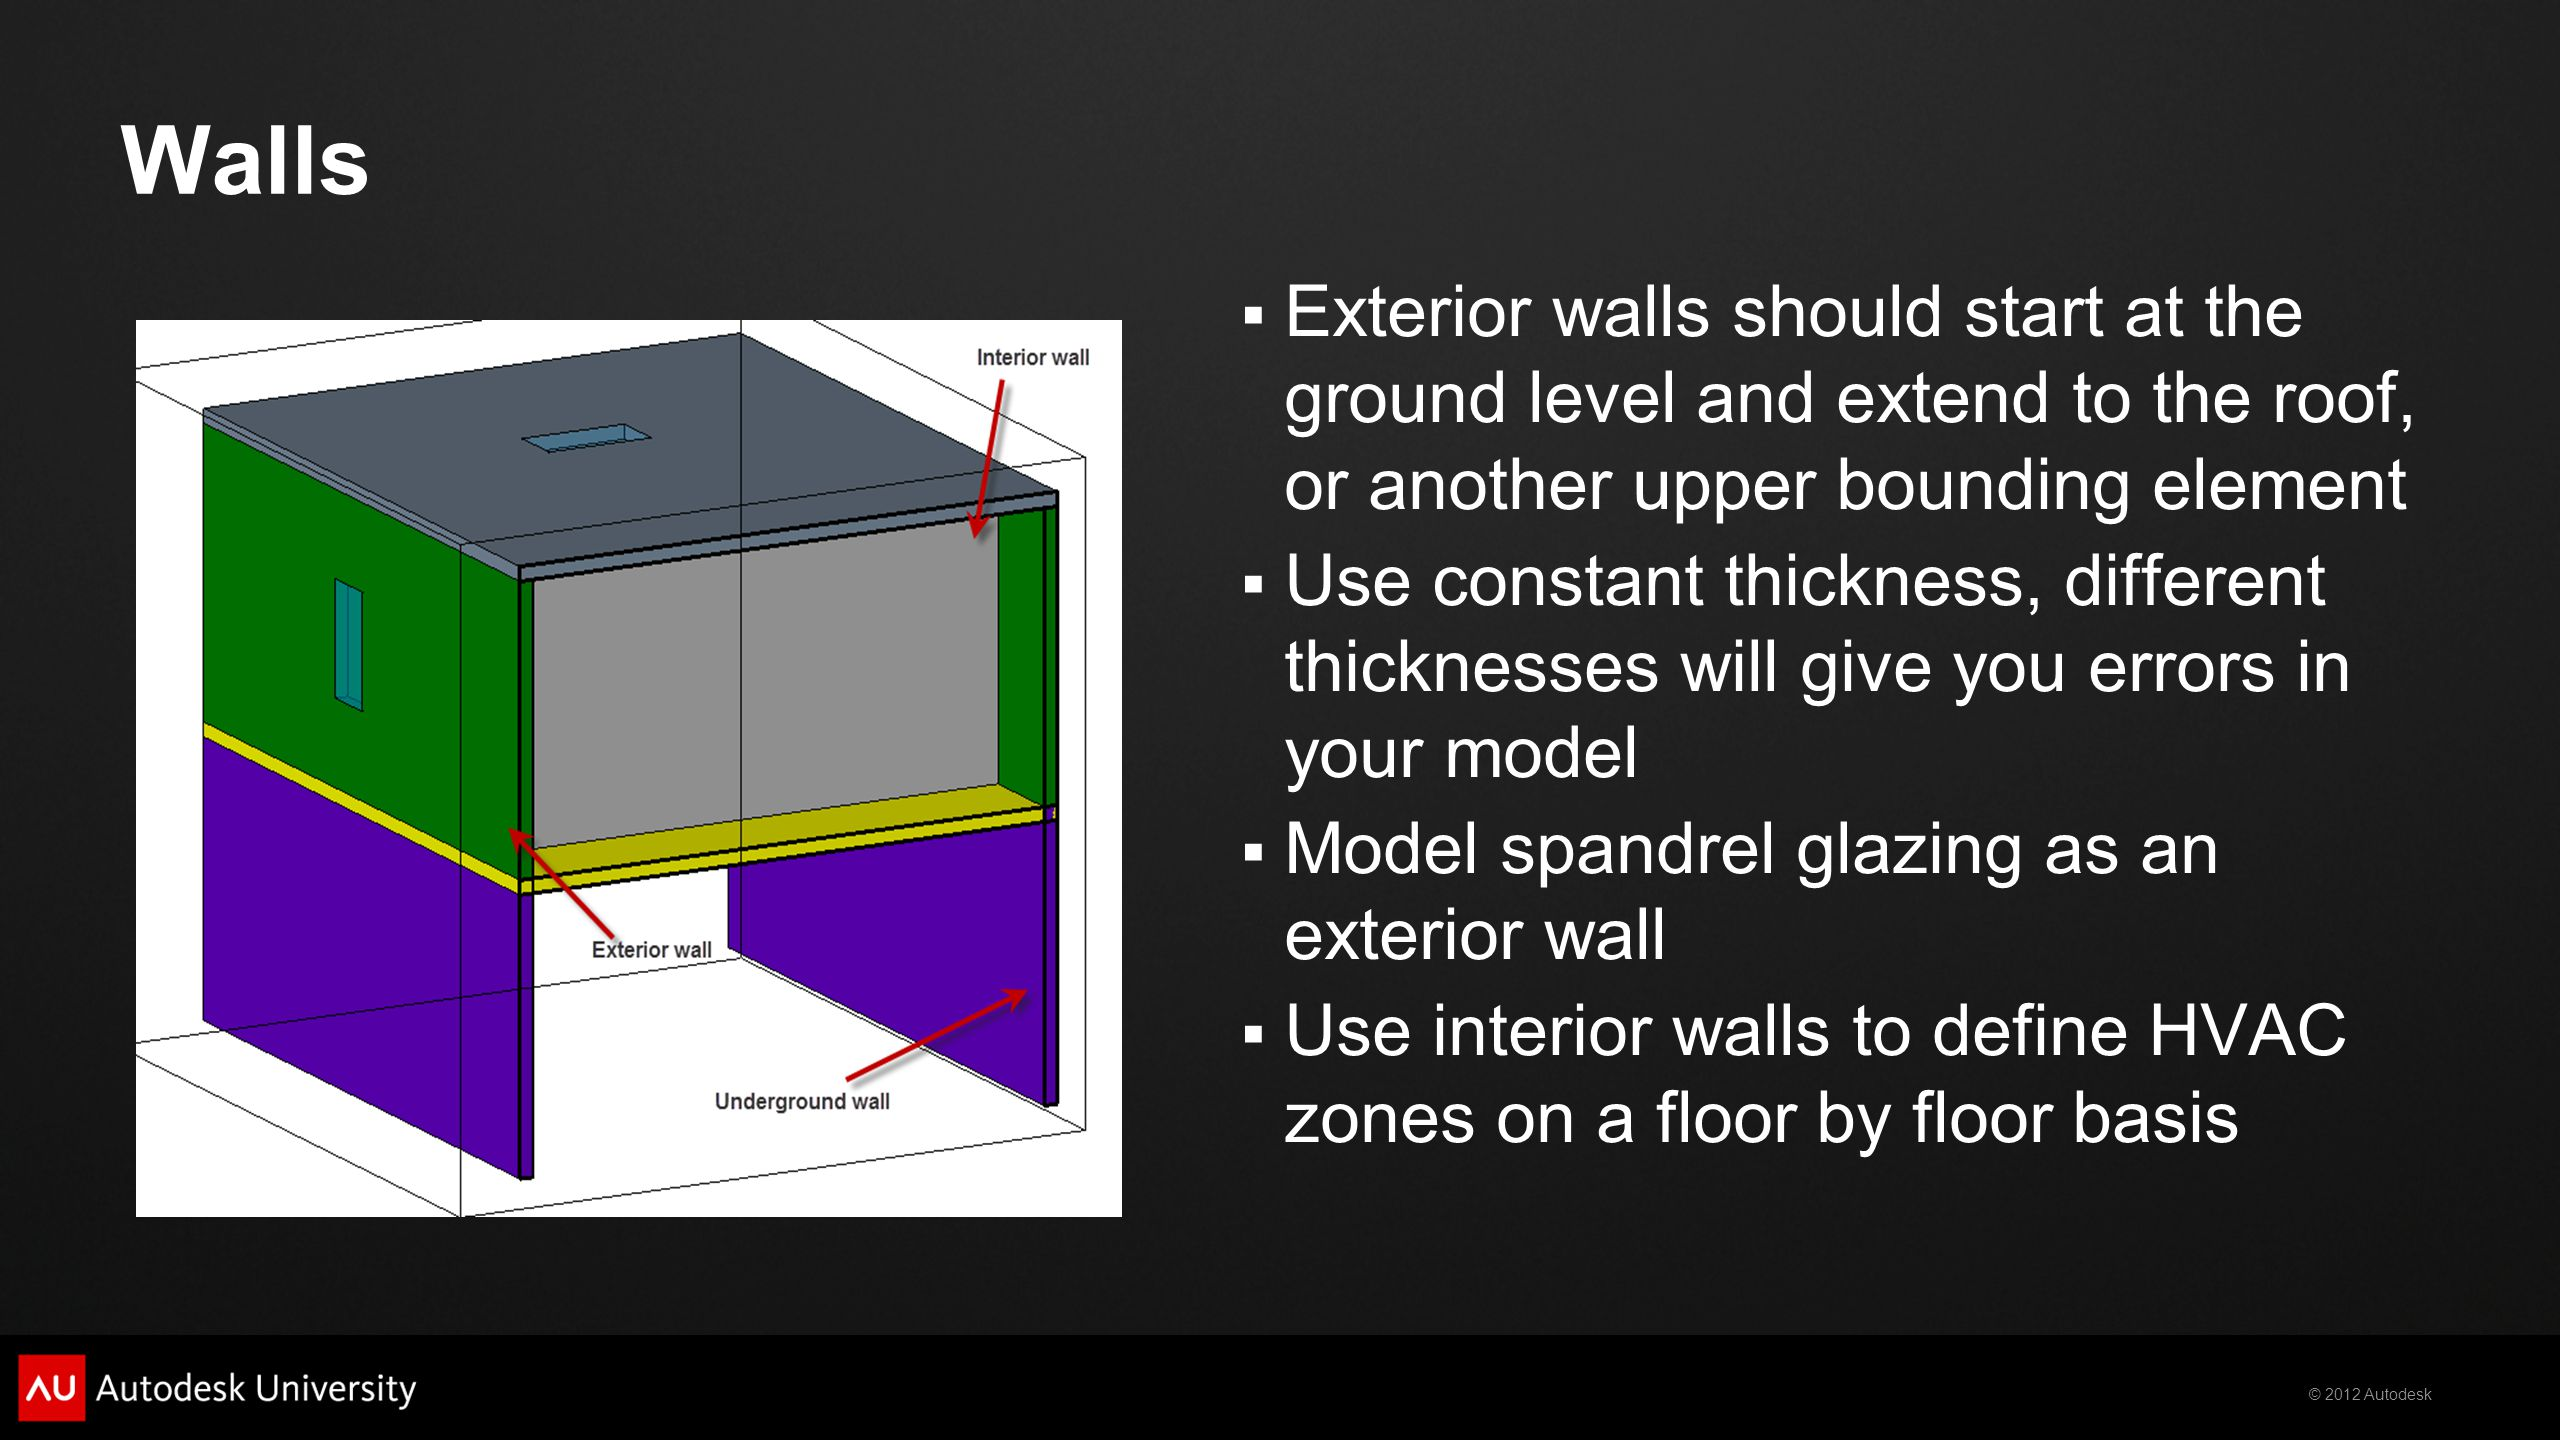 Walls Exterior walls should start at the ground level and extend to the roof, or another upper bounding element.